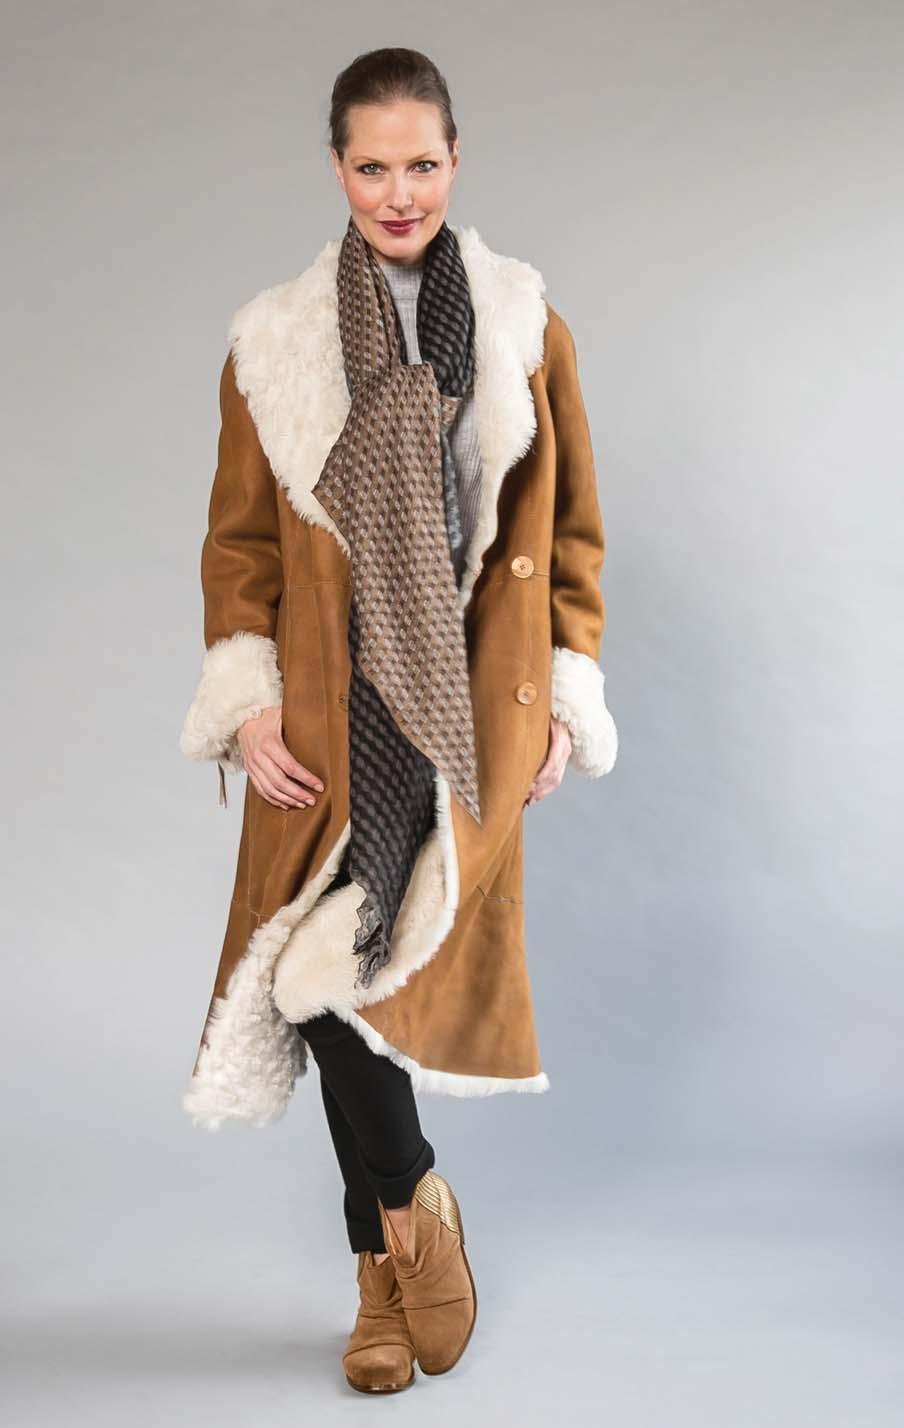 HISO raw edged superfine shearling coat. Scotch Cream only.